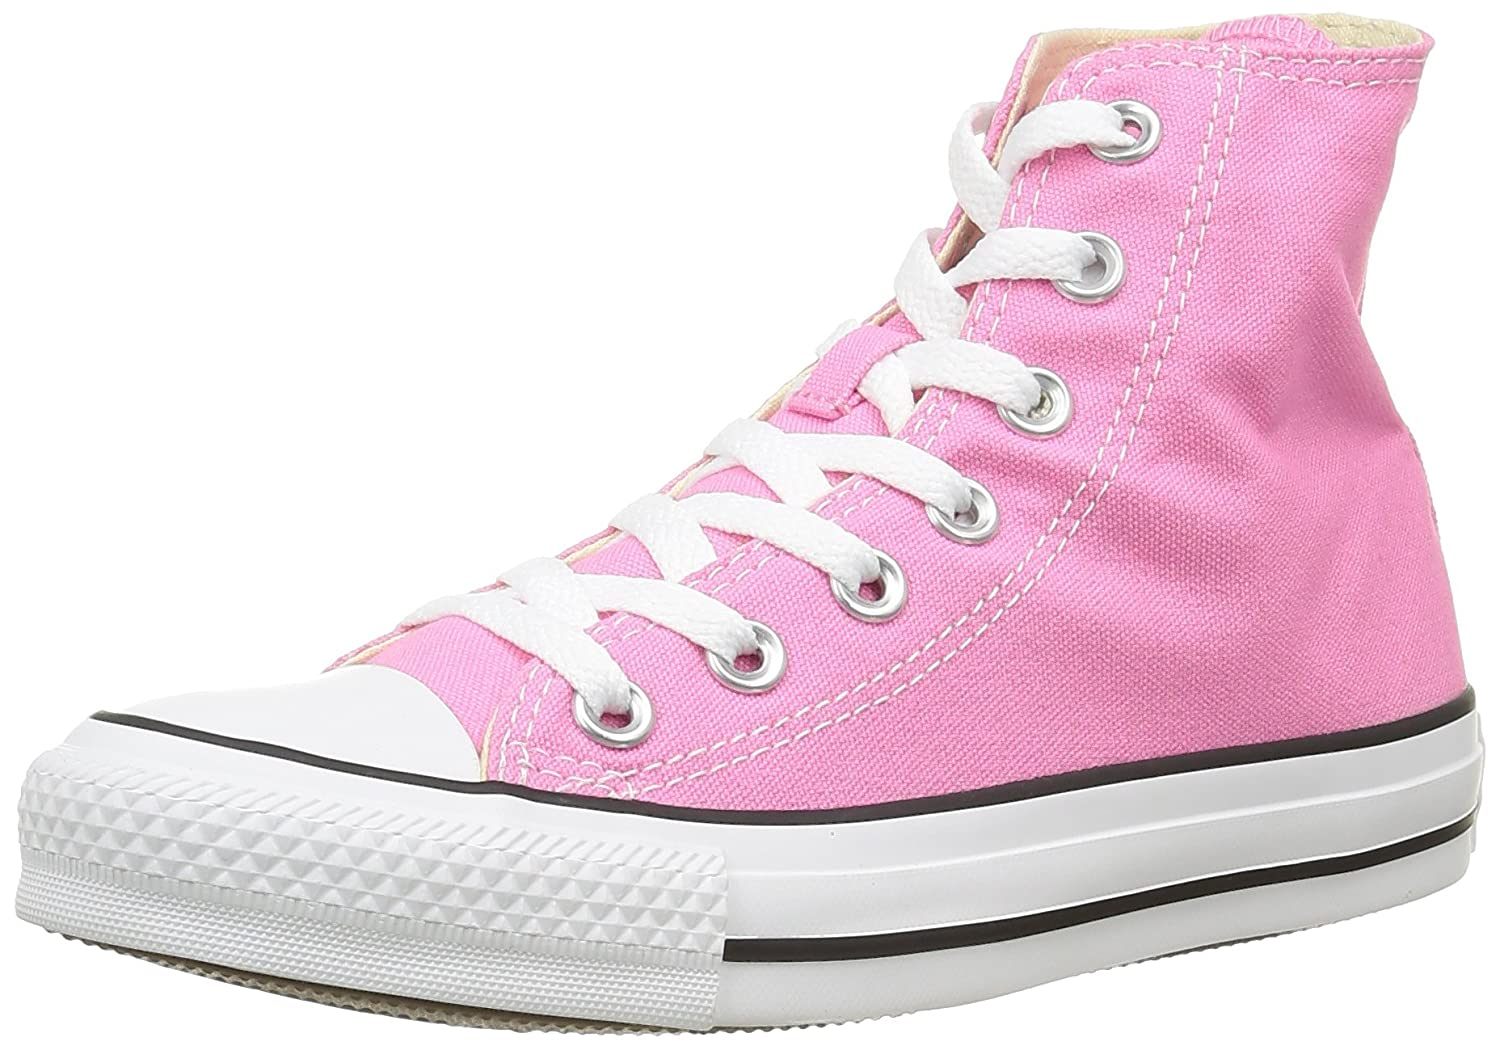 Converse Unisex-Adult Chuck Taylor All Star Hi-Top Trainers ... bc42b93a8